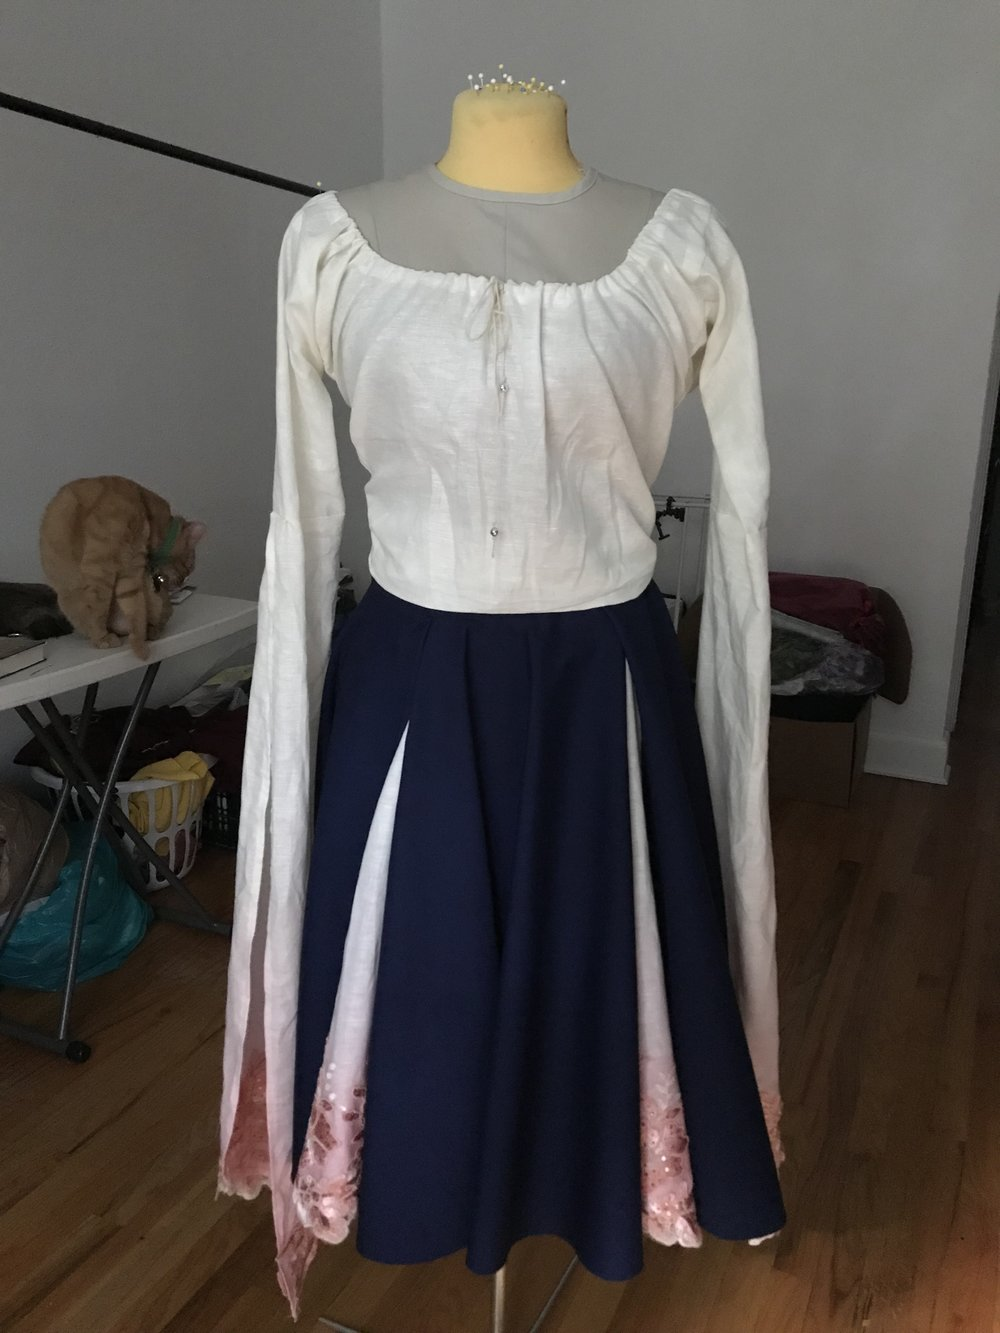 Completed blouse and skirt. The sleeves were dip dyed and had lace added just like the skirt panels.